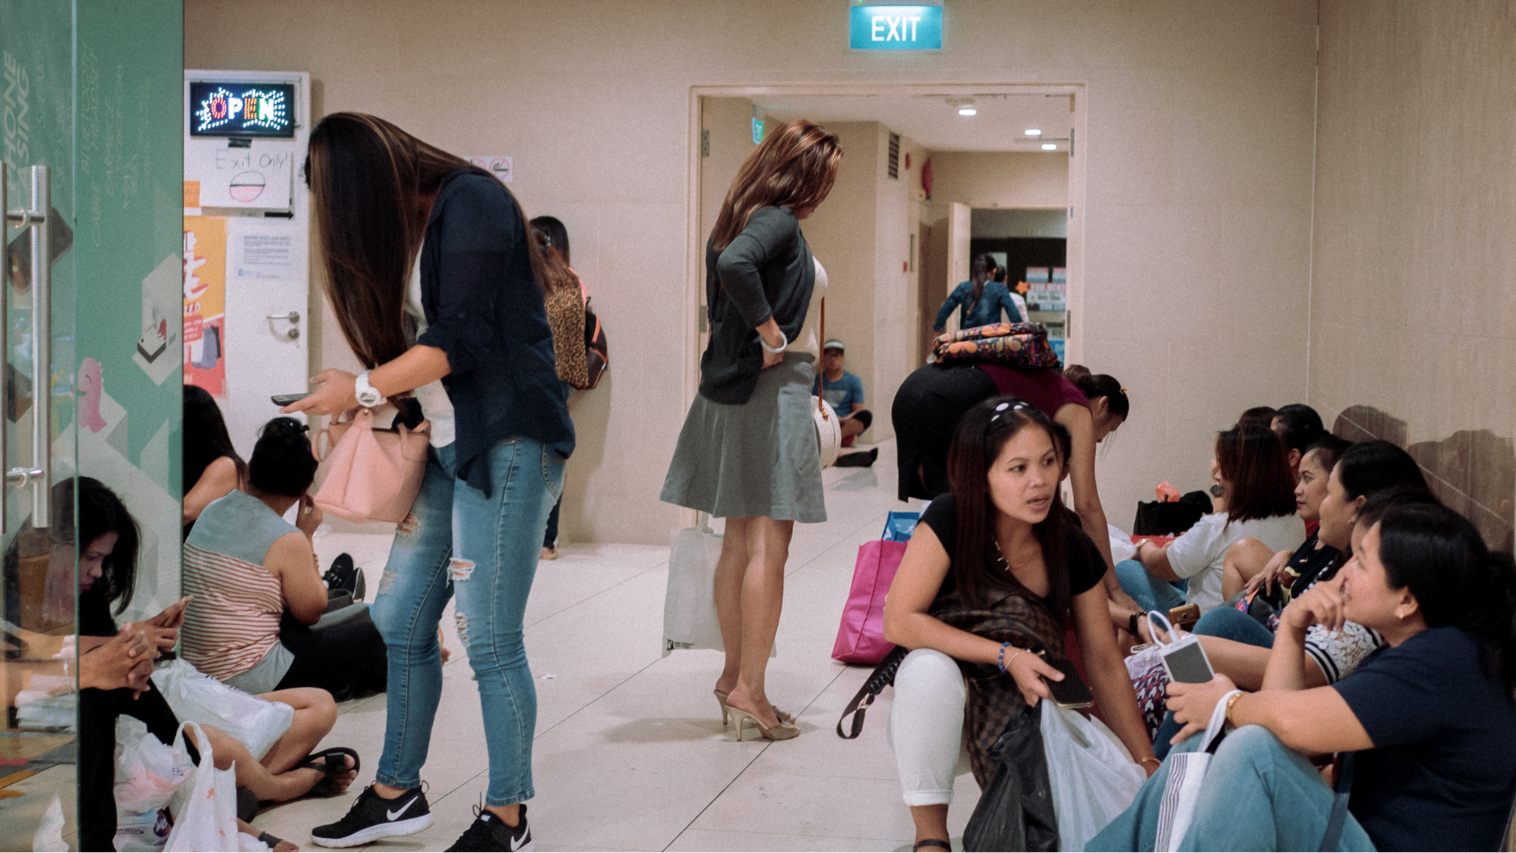 The Lucky Plaza Accident Won't Stop Domestic Workers Having Picnics. And It Shouldn't.